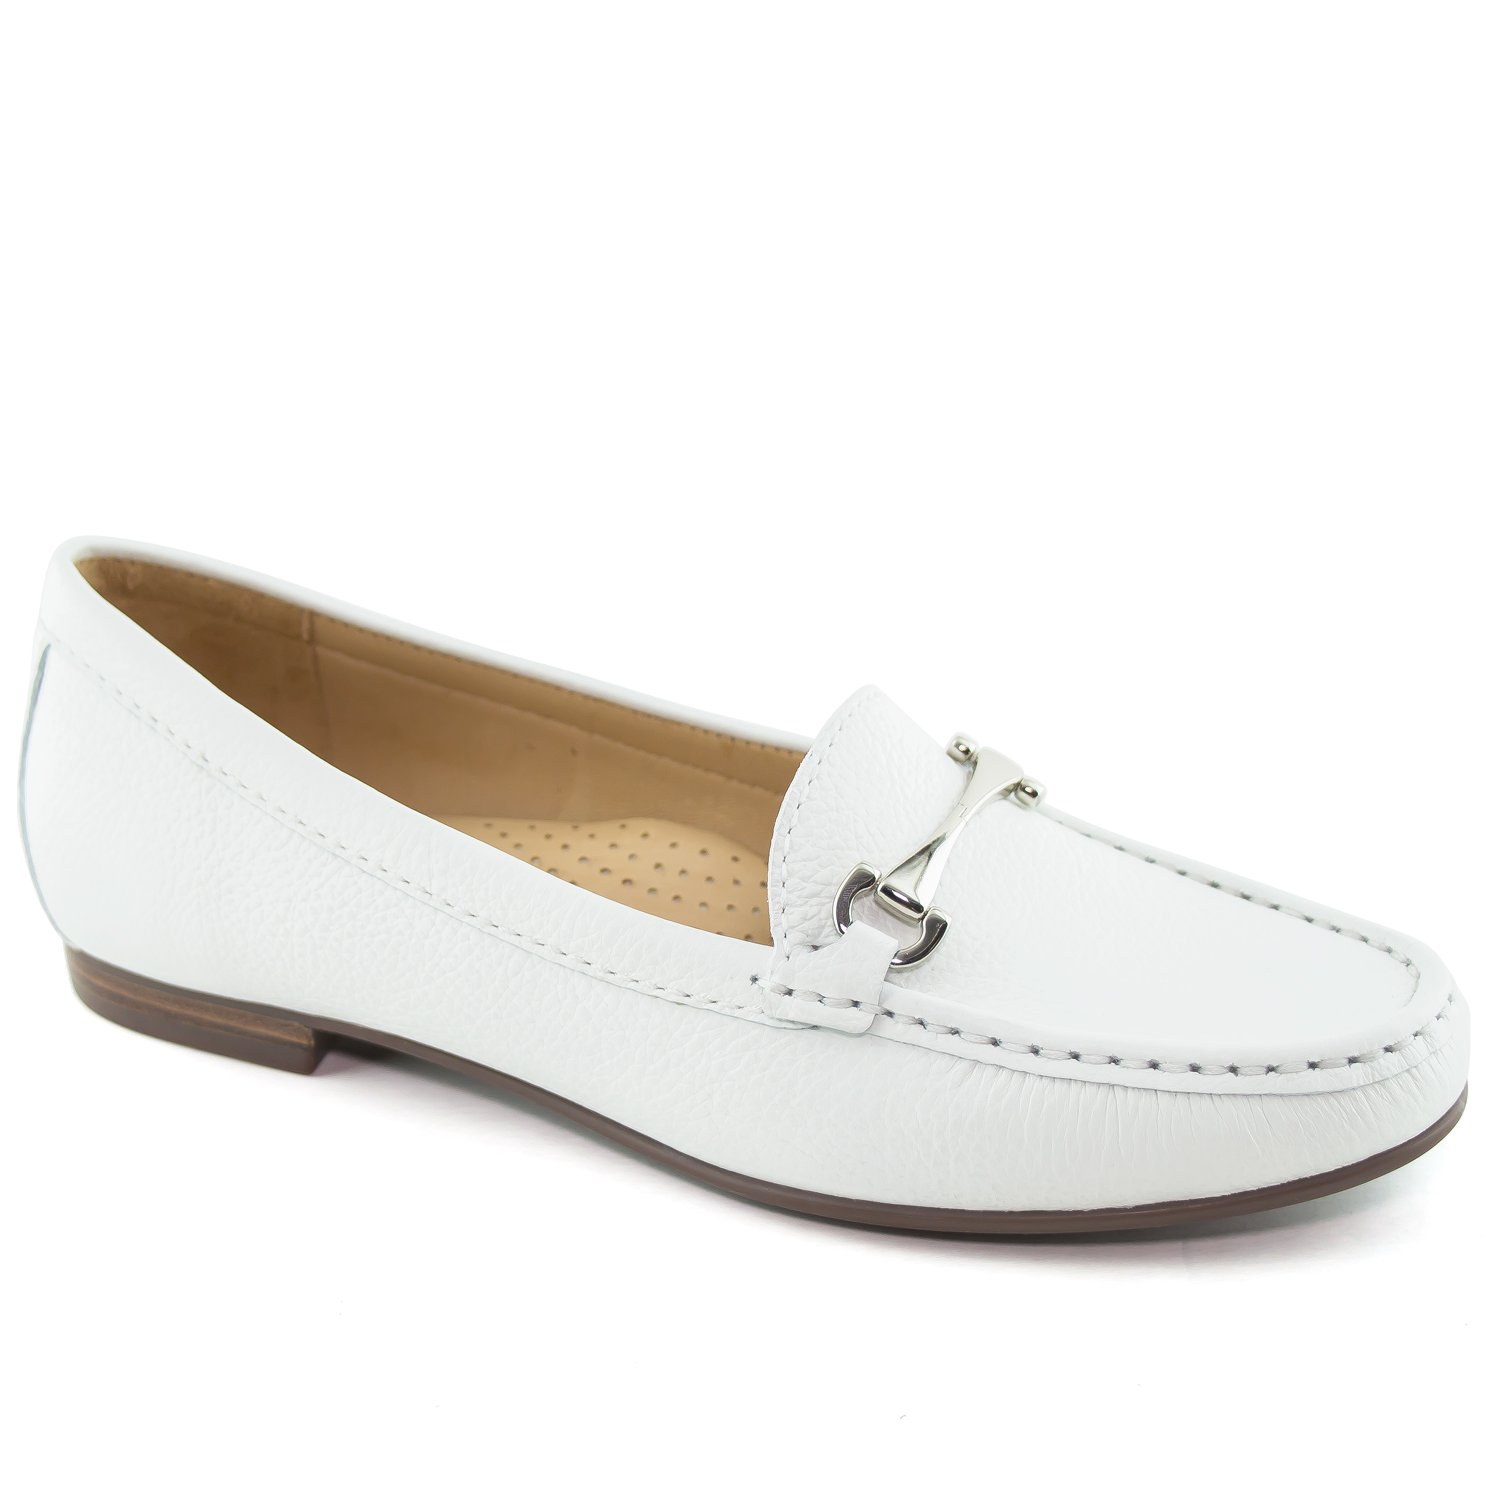 Driver Club USA Women's Fashion Shoes Grand 2 White Grainy Buckle Loafer 8 (More Size/Colors Available)